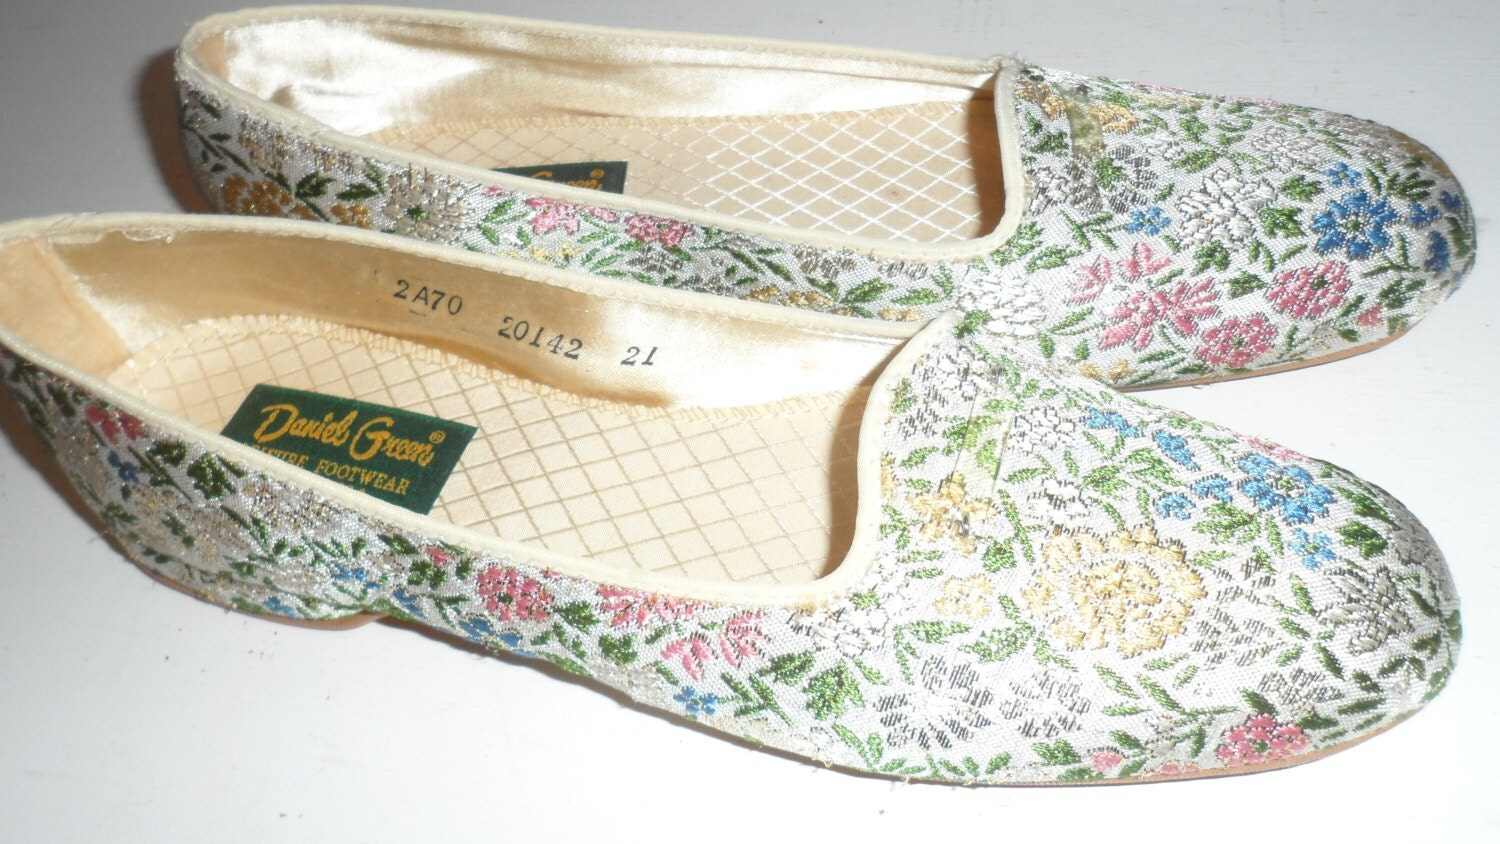 Daniel green 1960s bedroom slippers floral and by foreverastar for Daniel green bedroom slippers